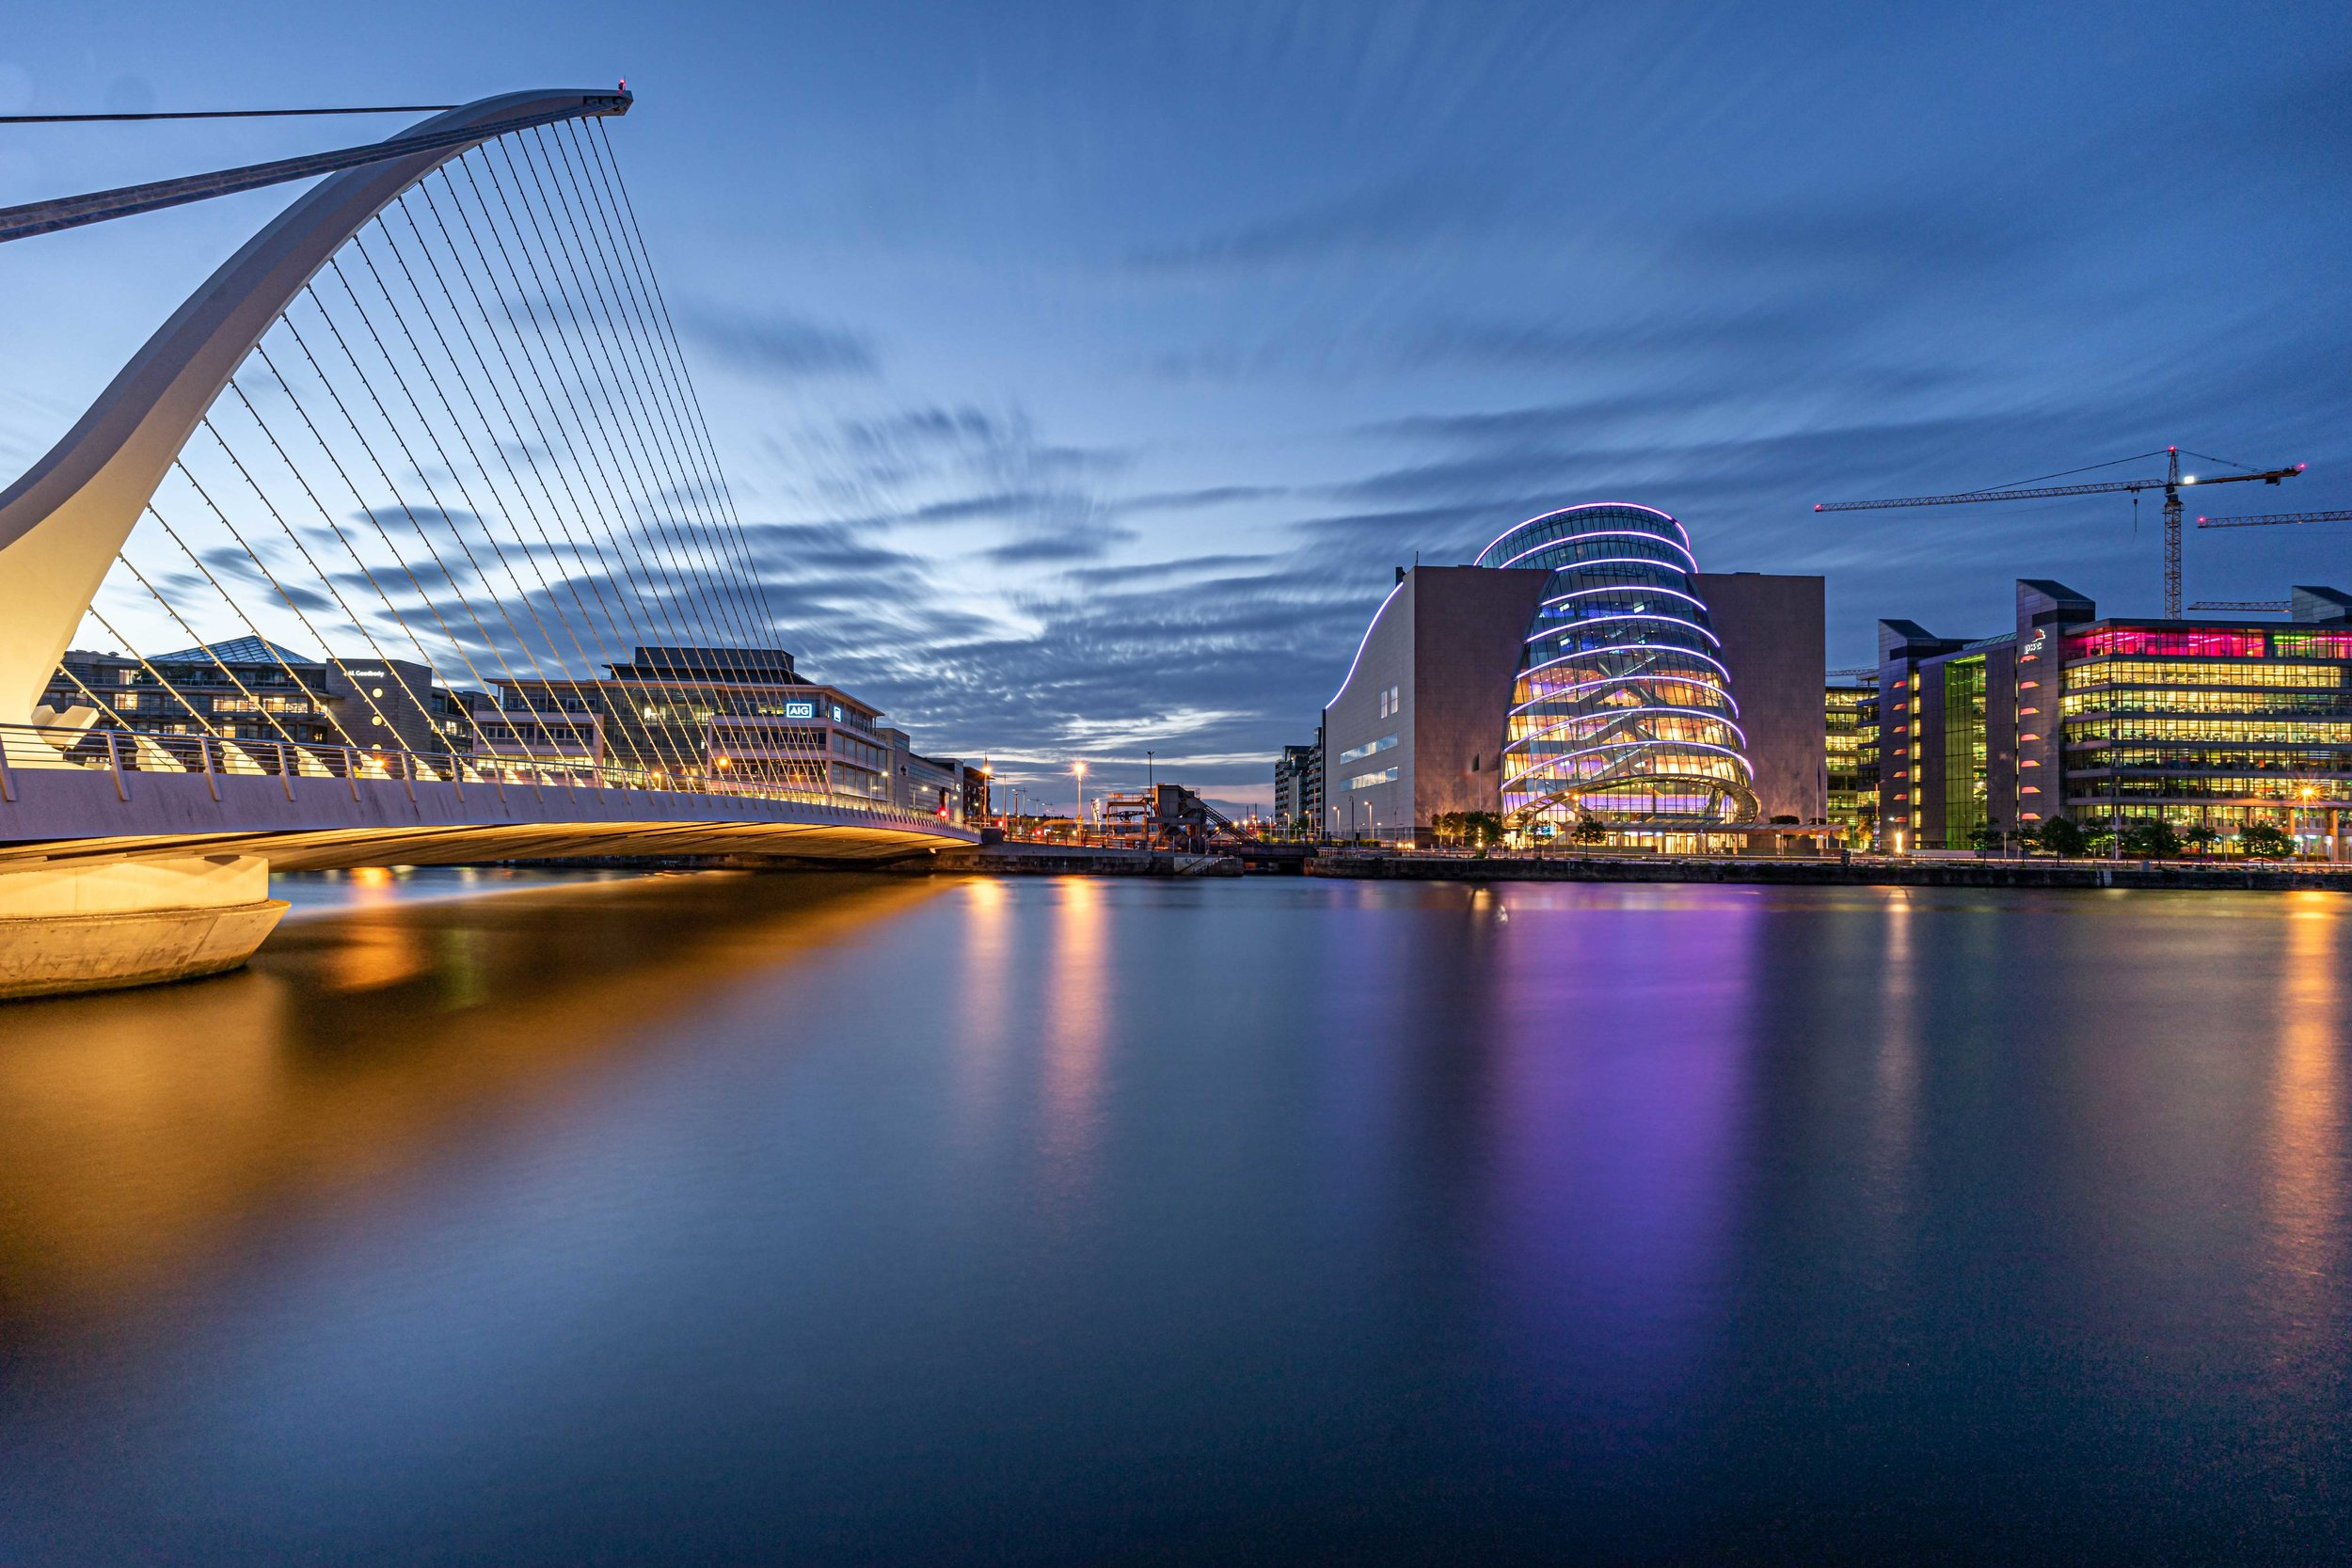 Travel photograph. City photography. Dublin city. River Liffey. .jpg